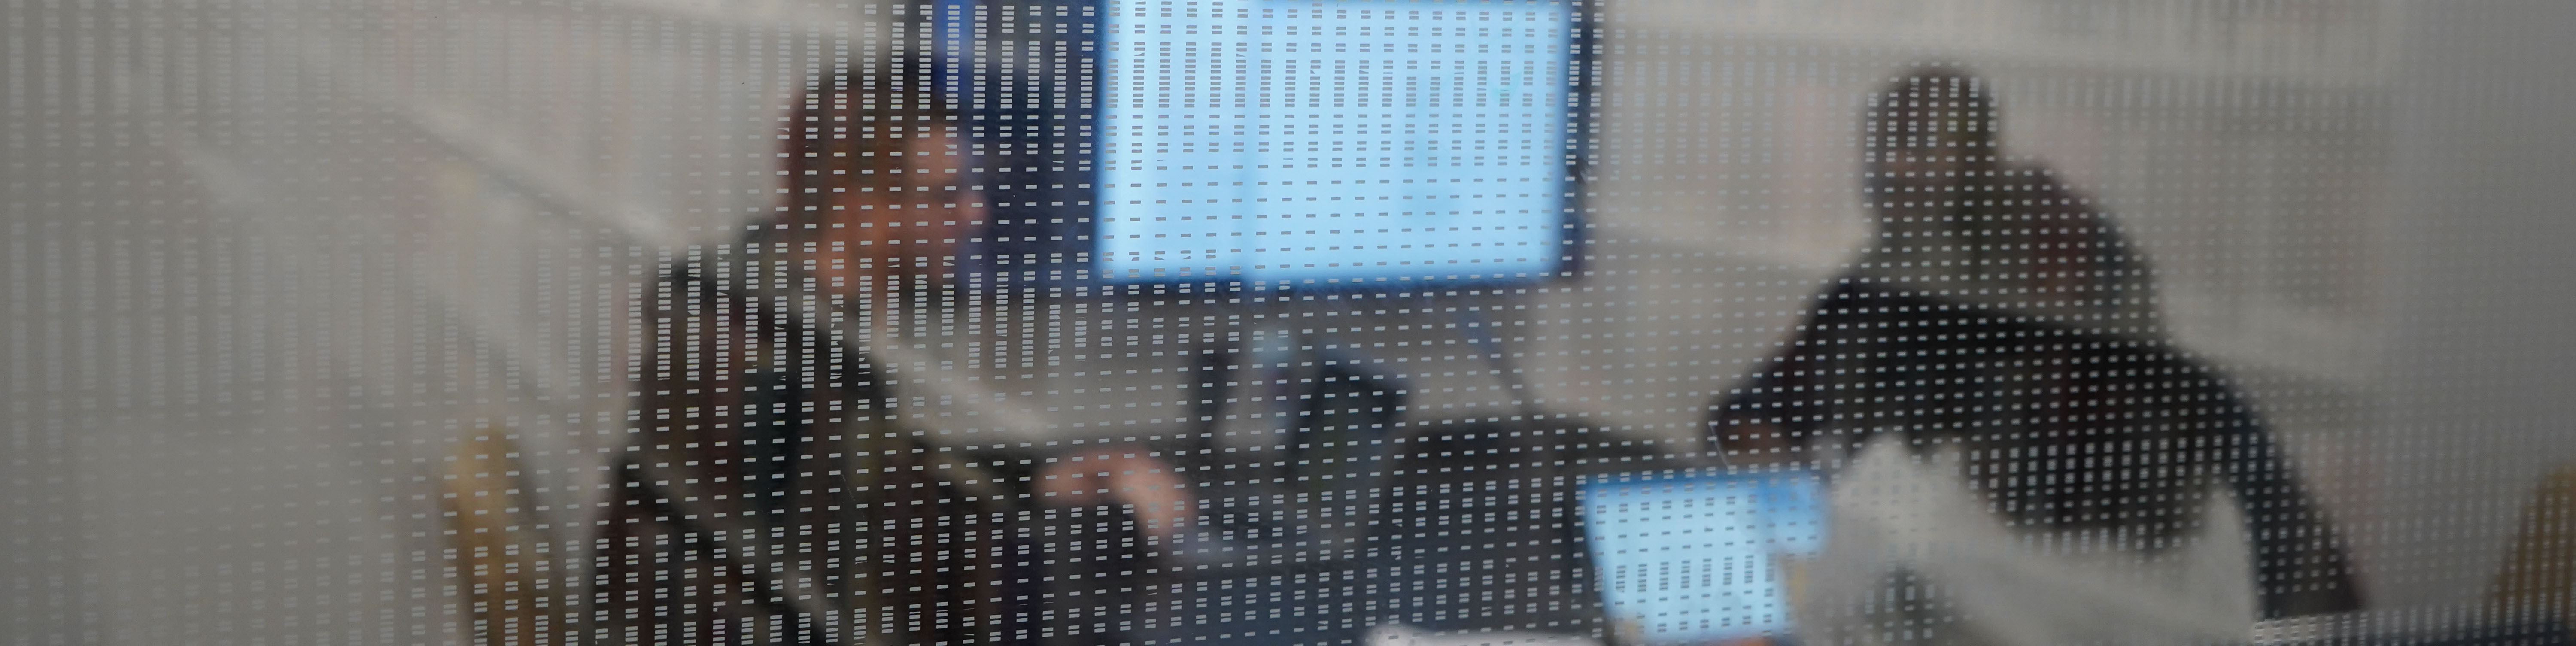 Looking through the glass of a group working together